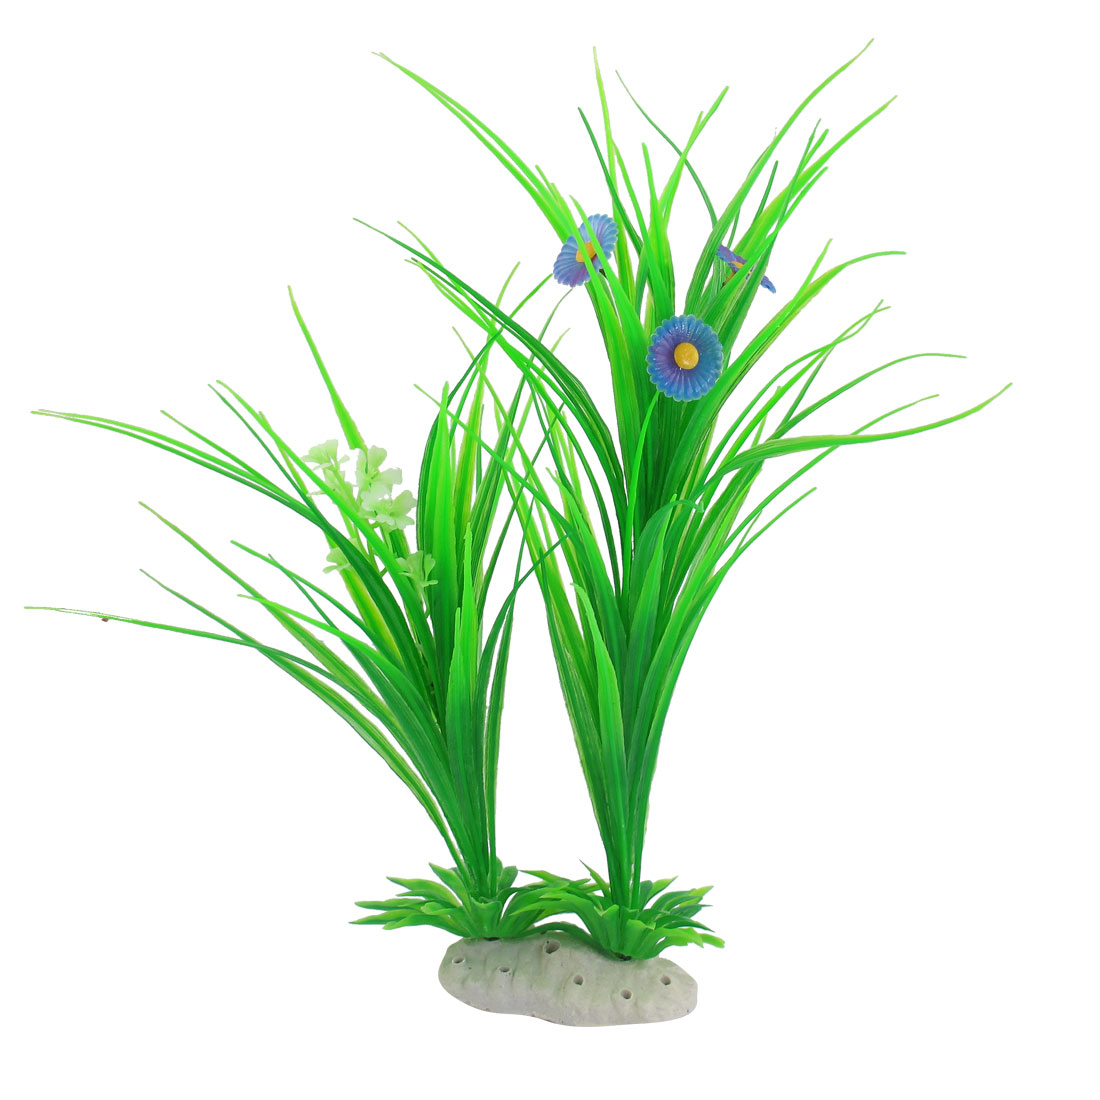 Underwater Florescent Green Plants Fish Tank Aquarium Ornament 13.4""